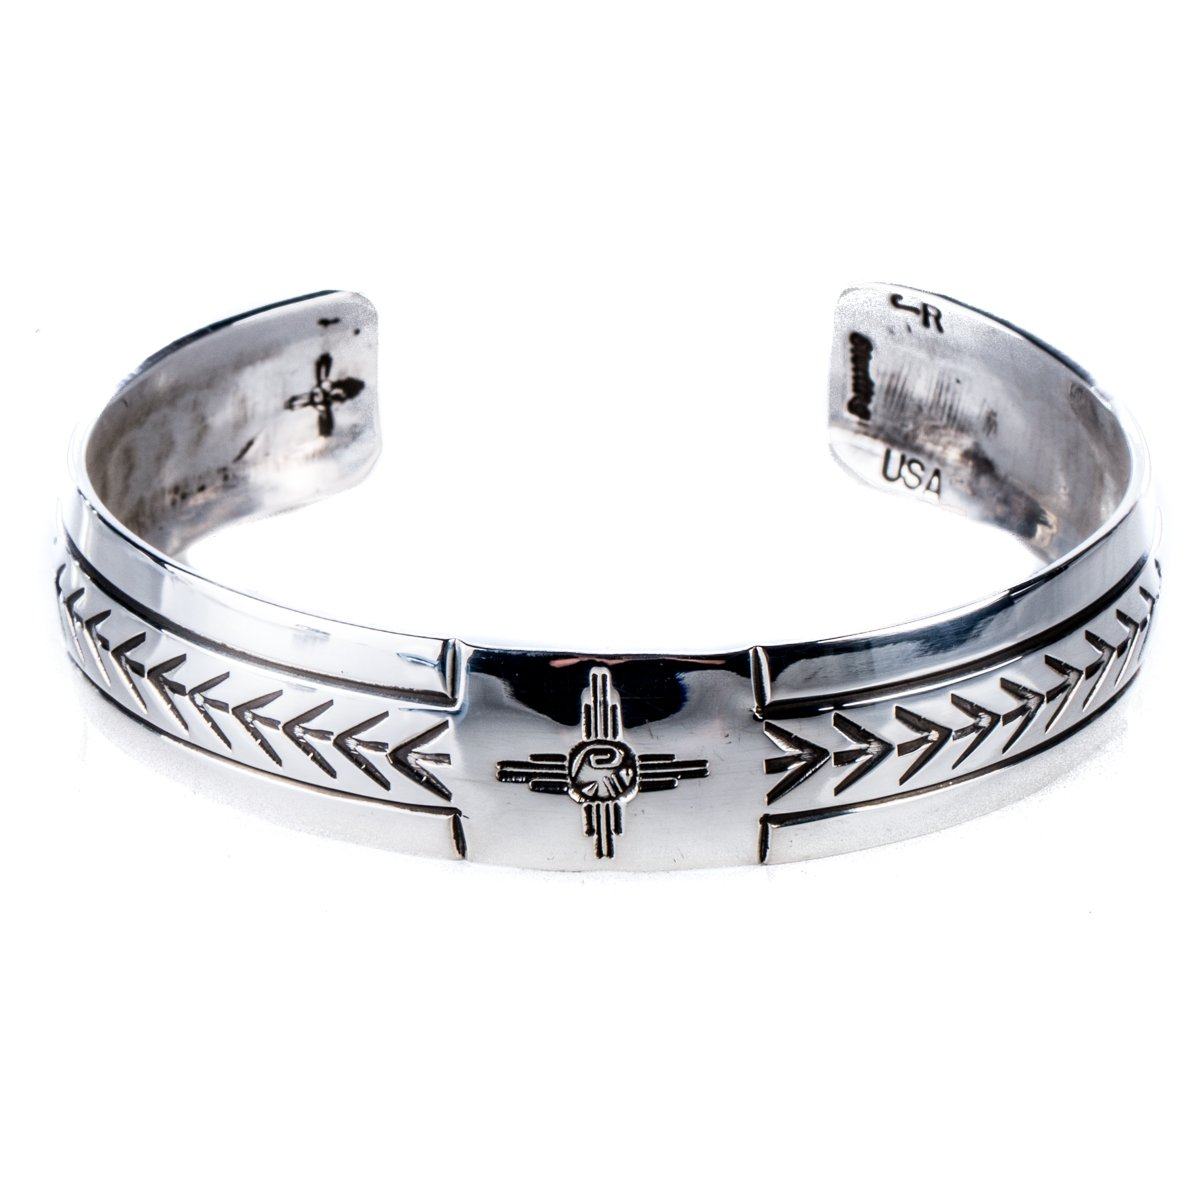 TSKIES Genuine Navajo Sterling Silver .925 Stamped Cuff Bracelet ''Attune'' with Medicine Pouch (Large)